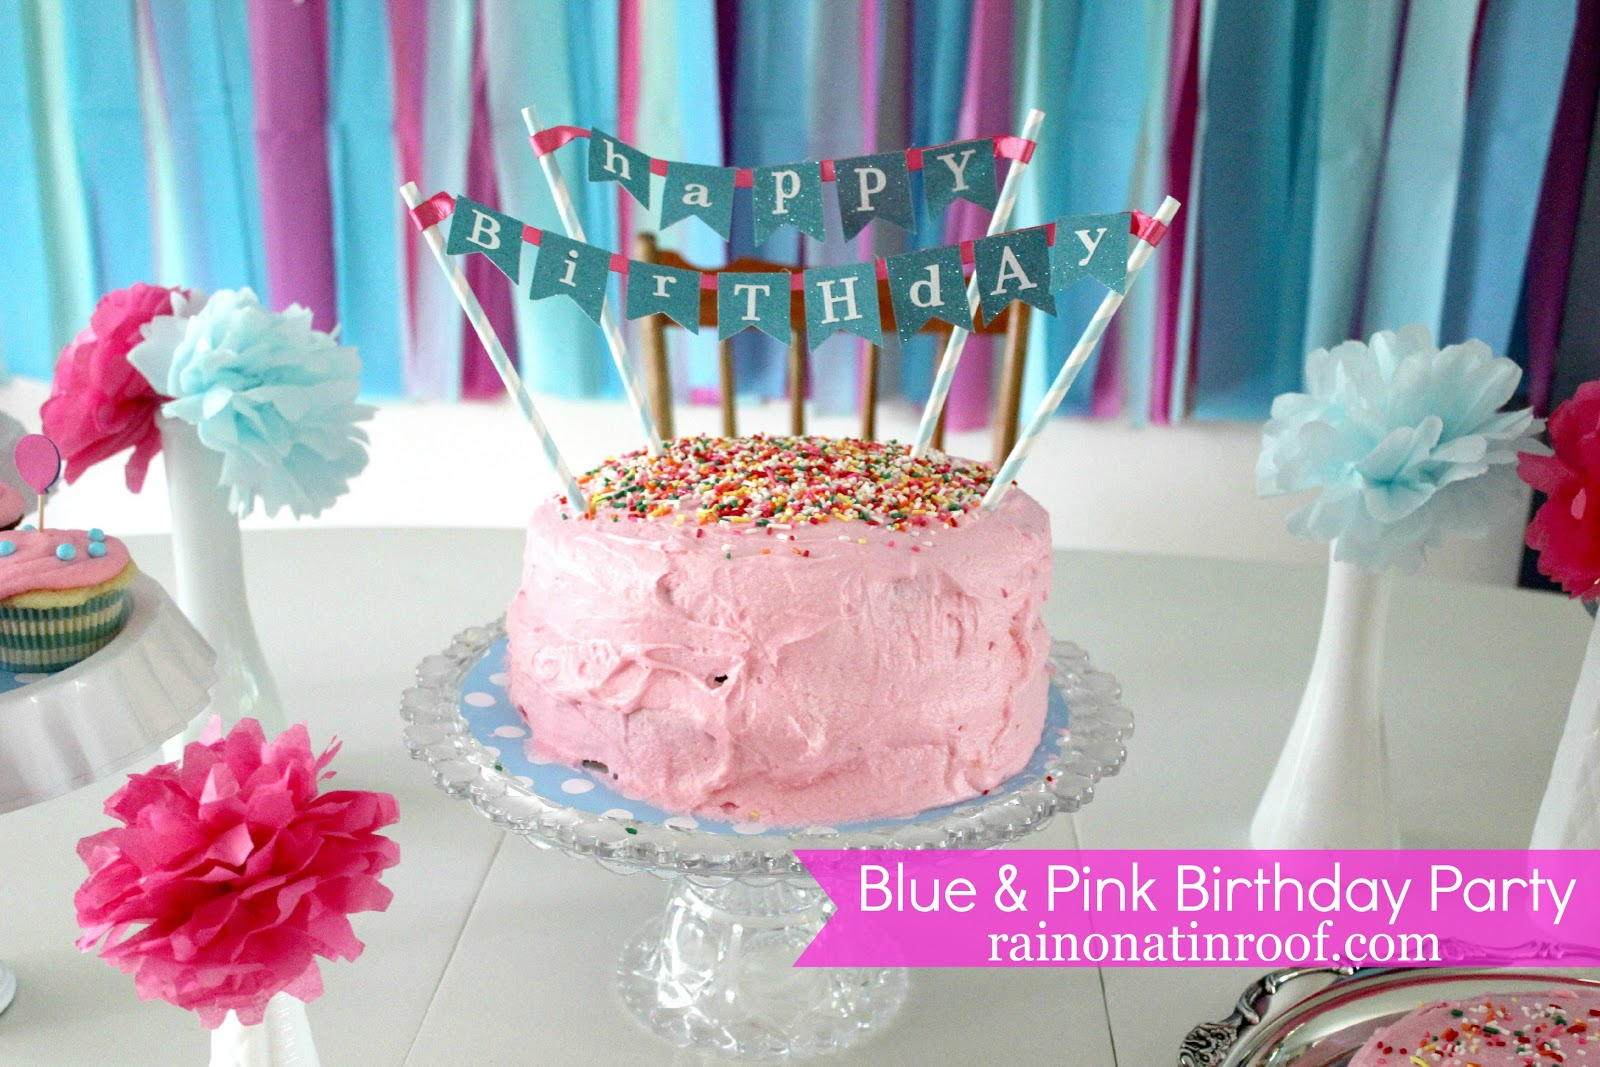 Blue First Birthday Decorations Image Inspiration of Cake and